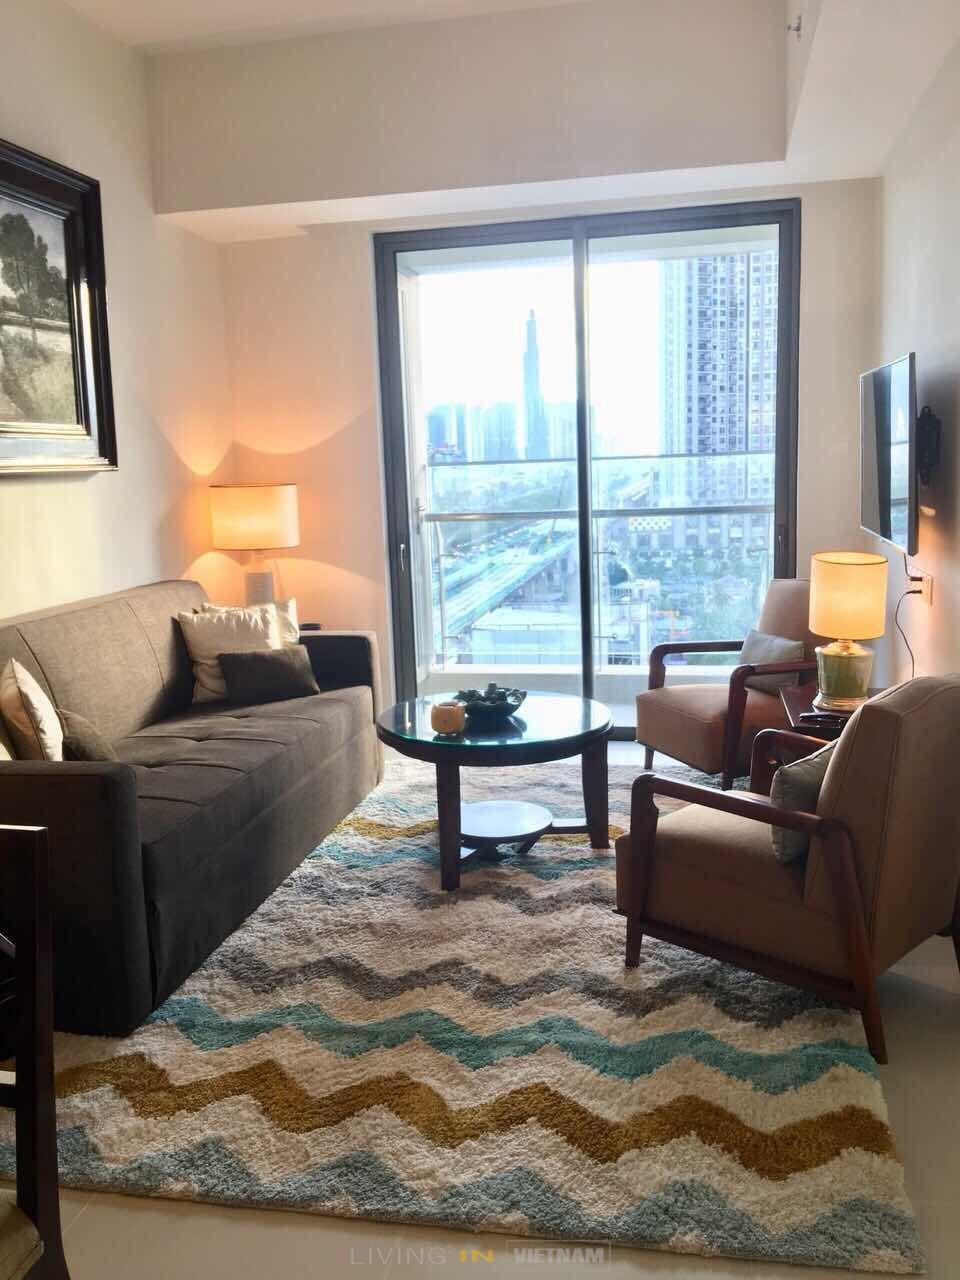 Gateway Thao Dien: 1BR Apartment For Rent In D2